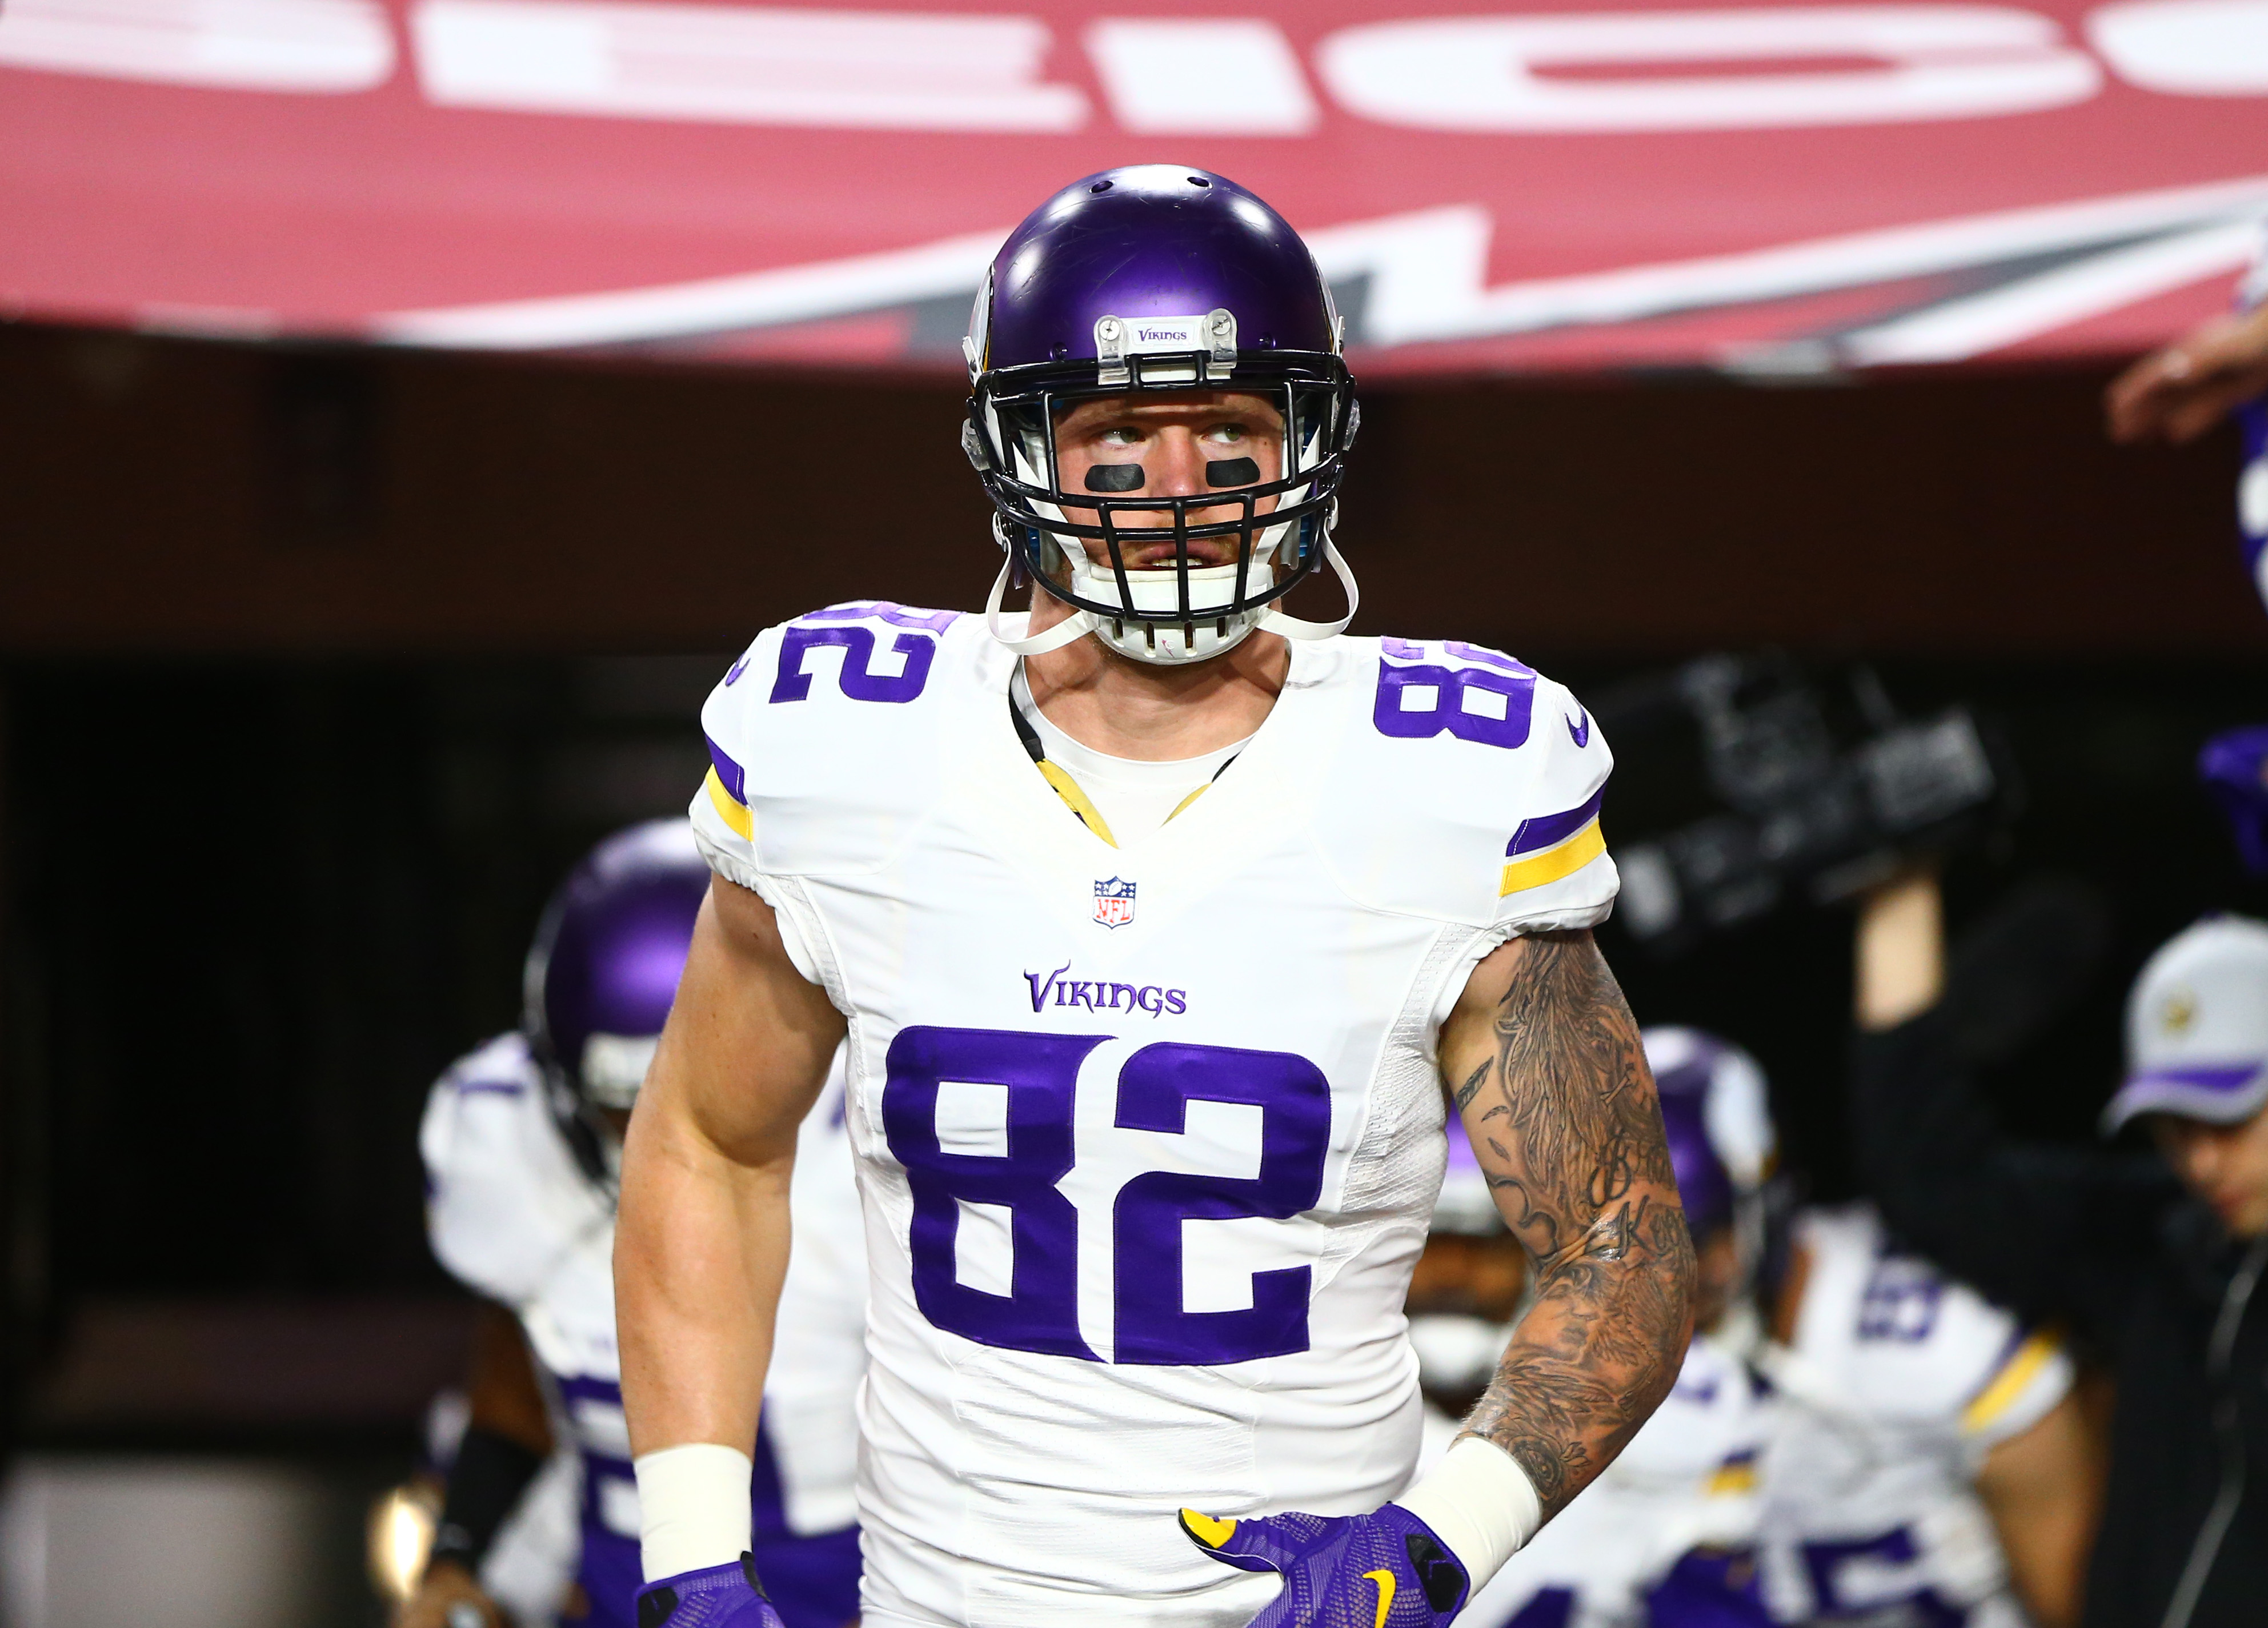 8997084-nfl-minnesota-vikings-at-arizona-cardinals